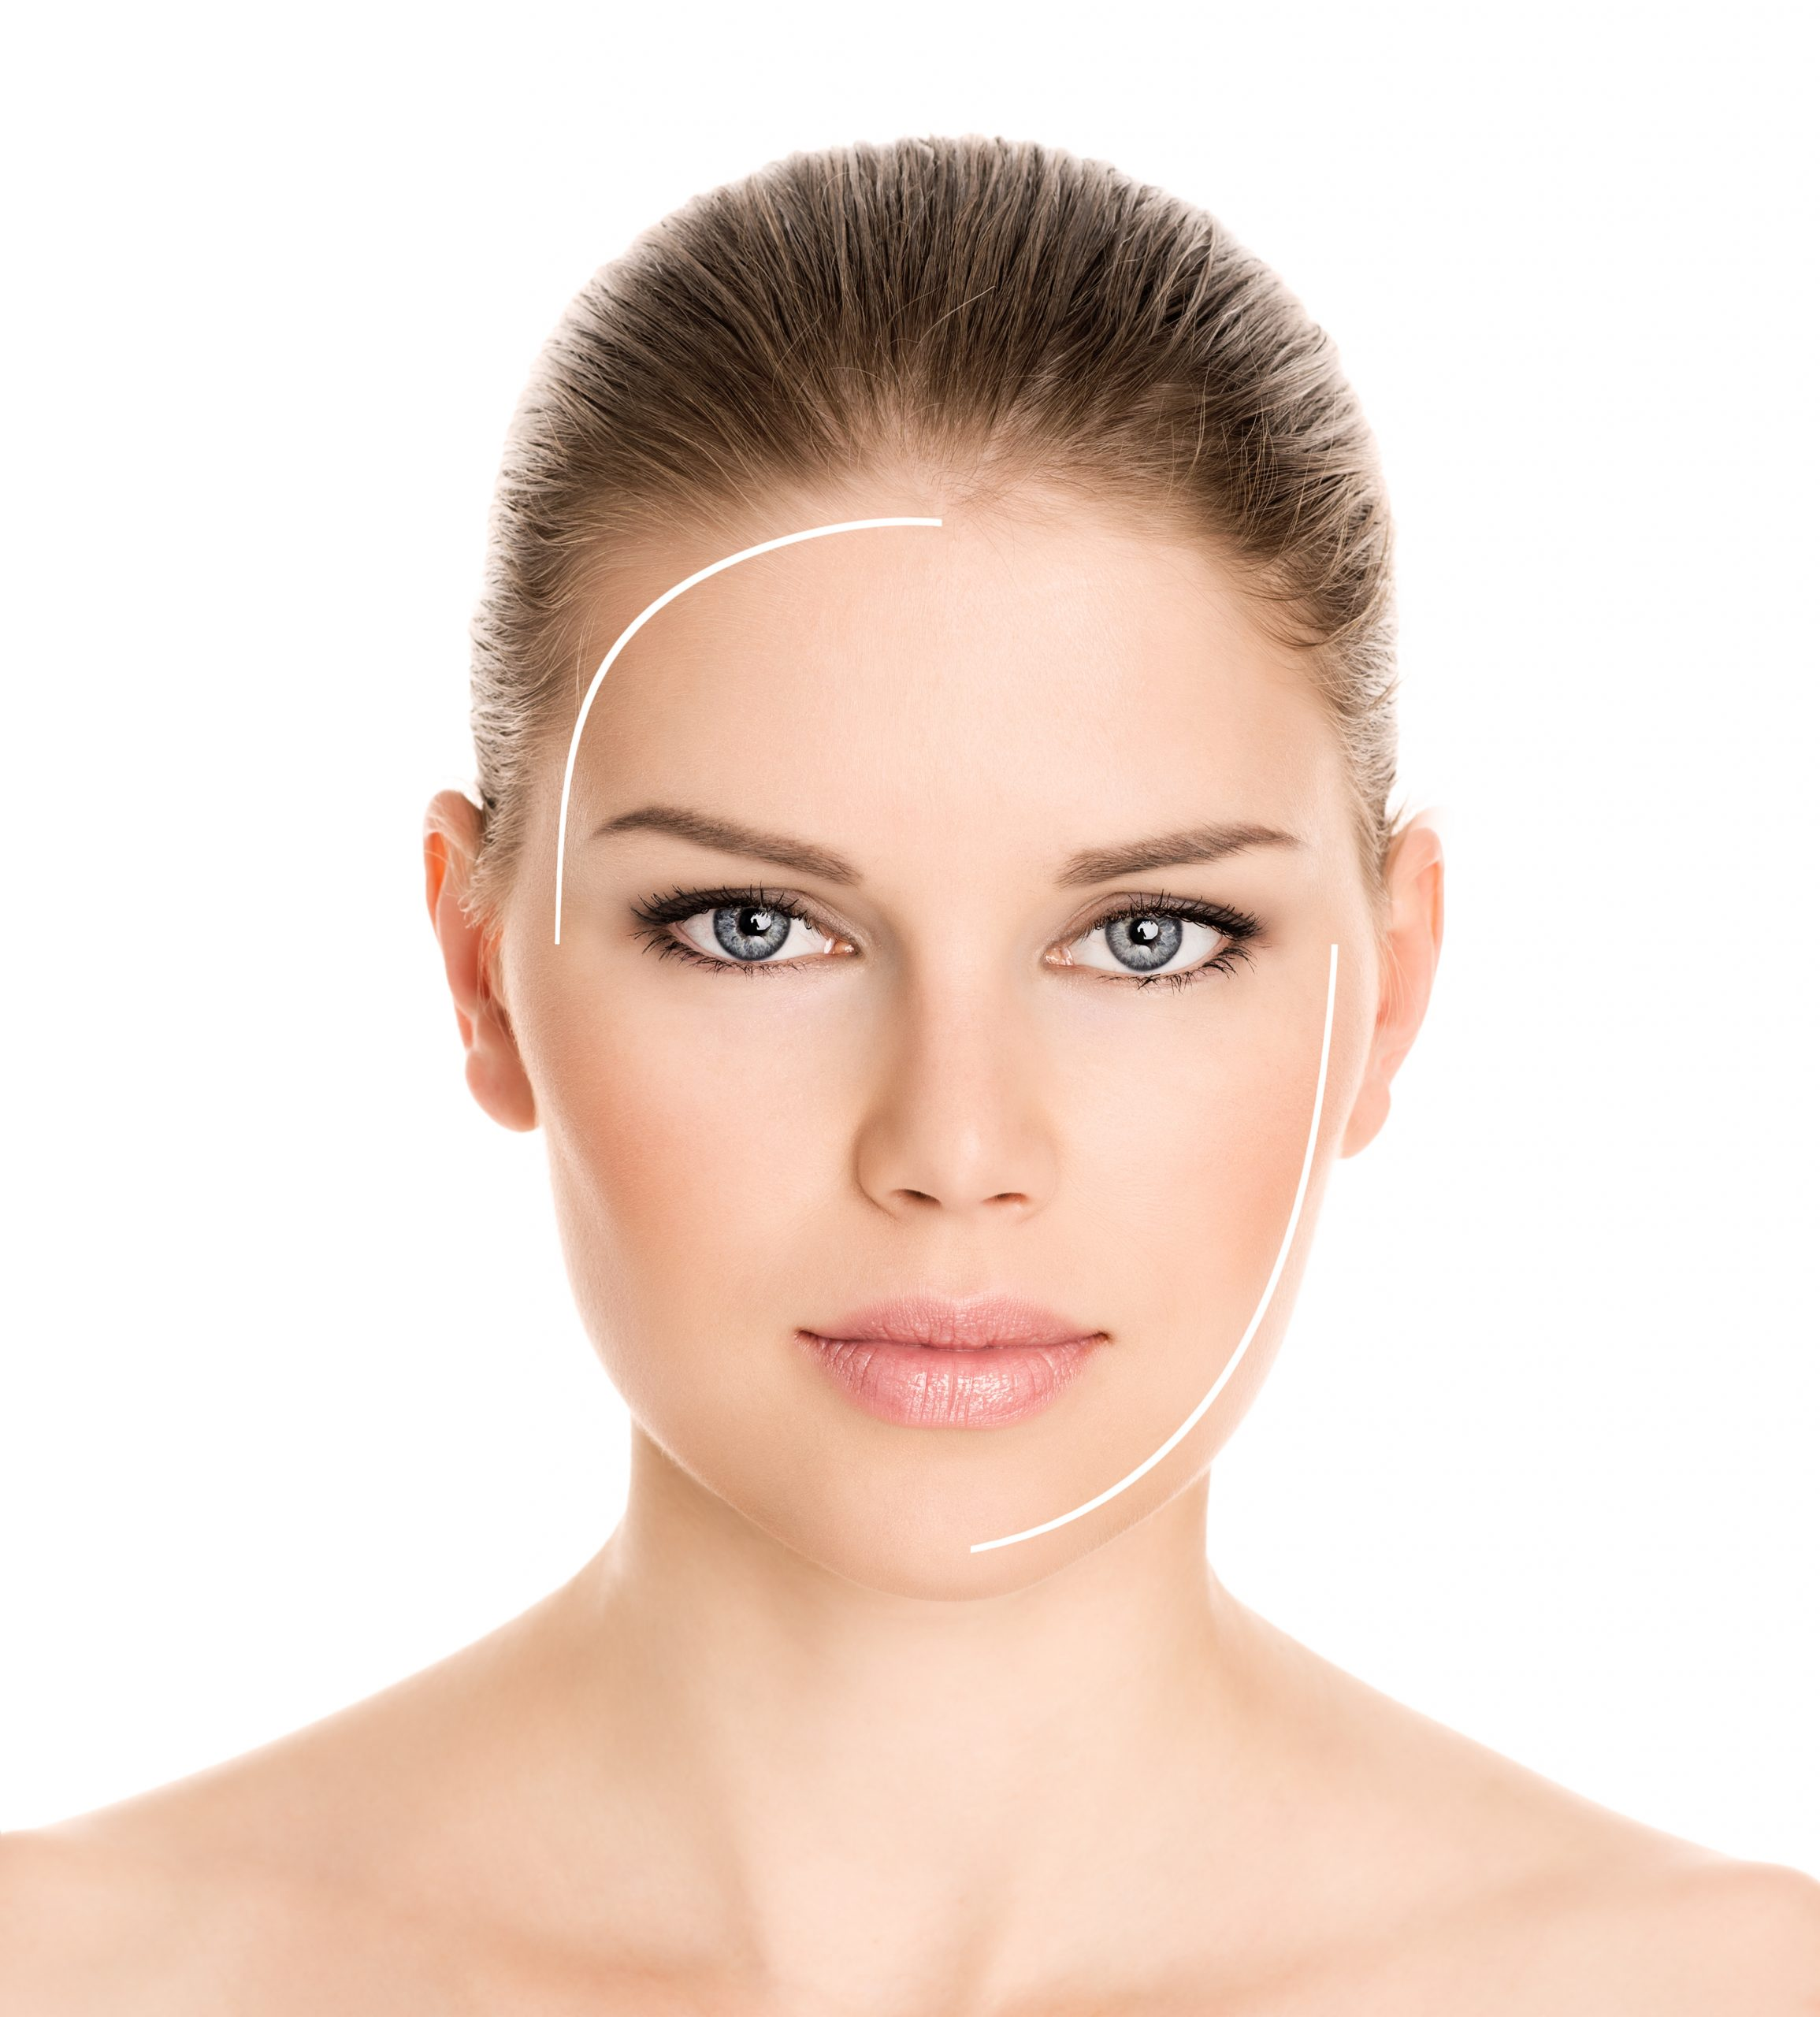 Figuring out Which Dermal Filler Is Right for You